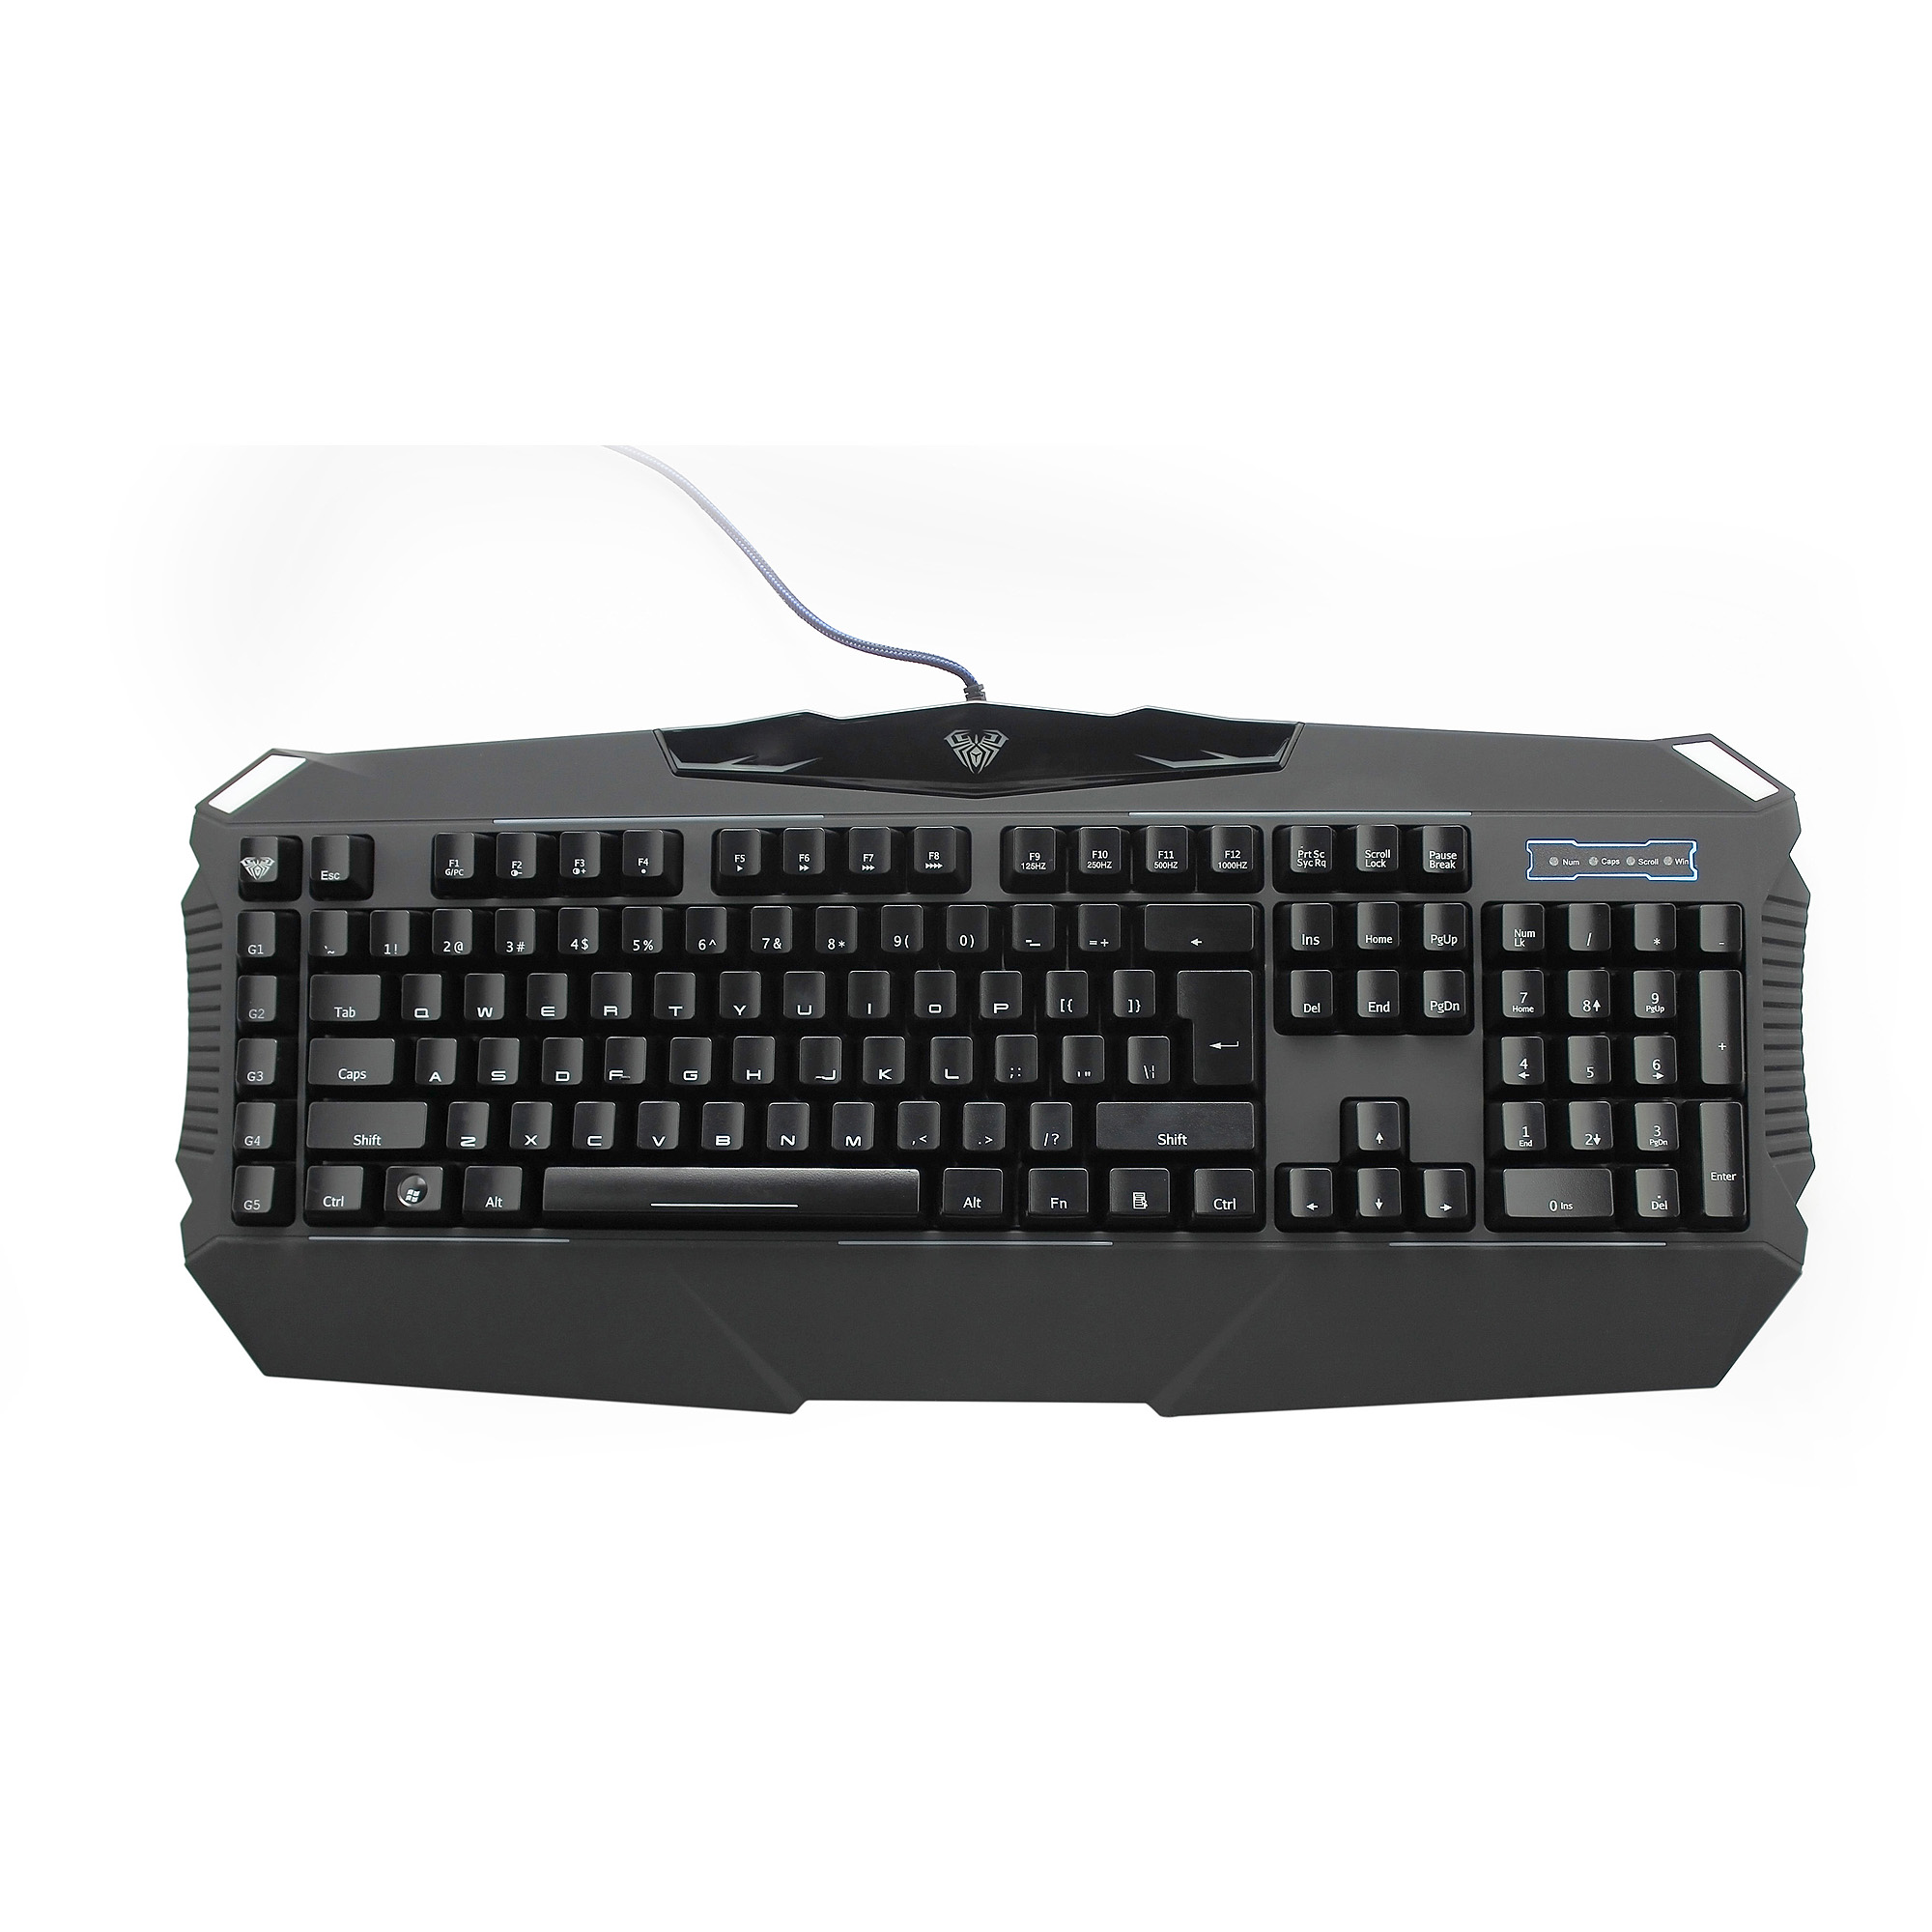 AULA Dragon Abyss SI-863 LED-Backlit Mechanical Wired Gaming Keyboard, Black